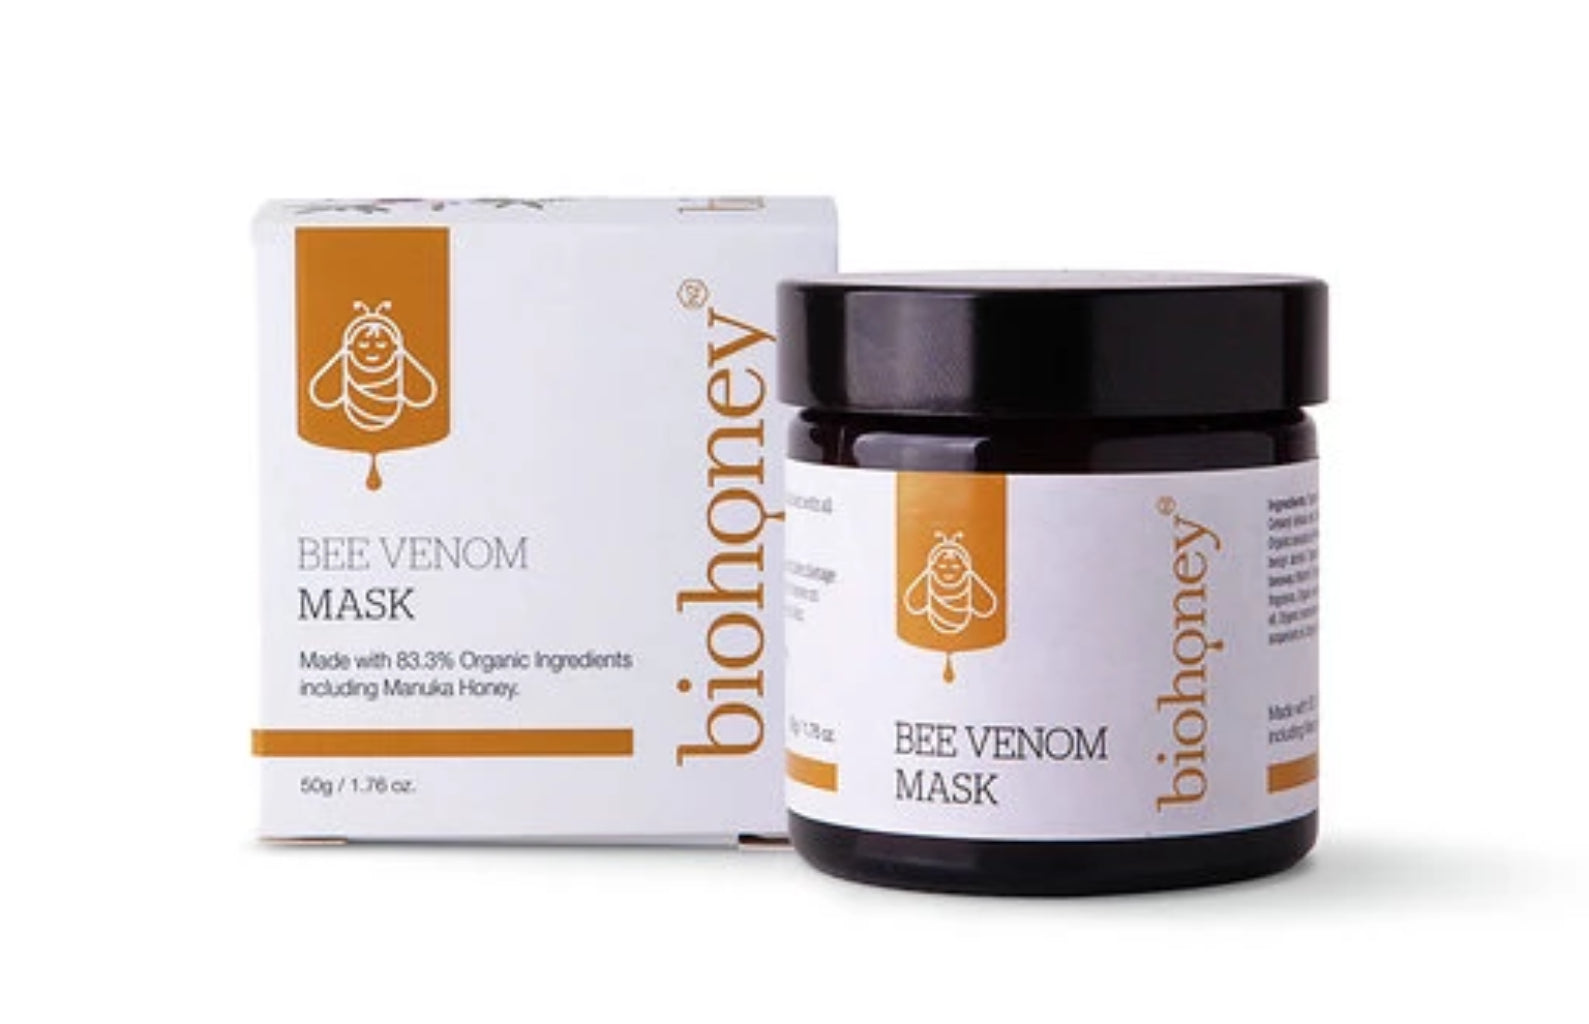 Bee Venom Mask - Face & Body | Biohoney